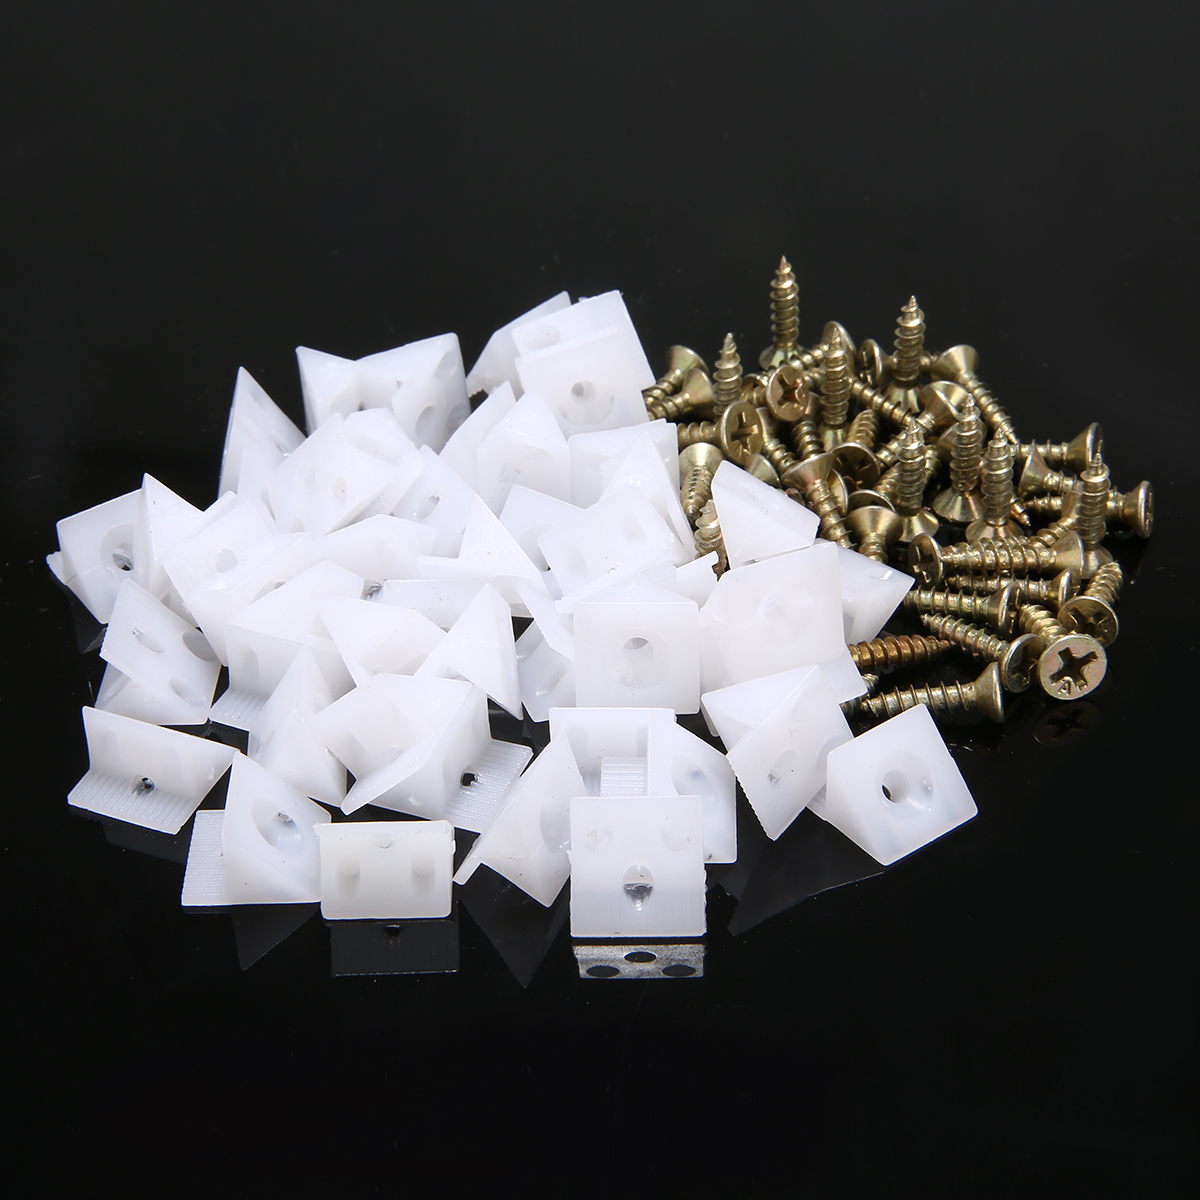 50pcs/set 5.3*3.7 Inch Drawer Bottom Sagging Repair Fixing Wedges Furniture Mending Corner Brackets Screw Kit